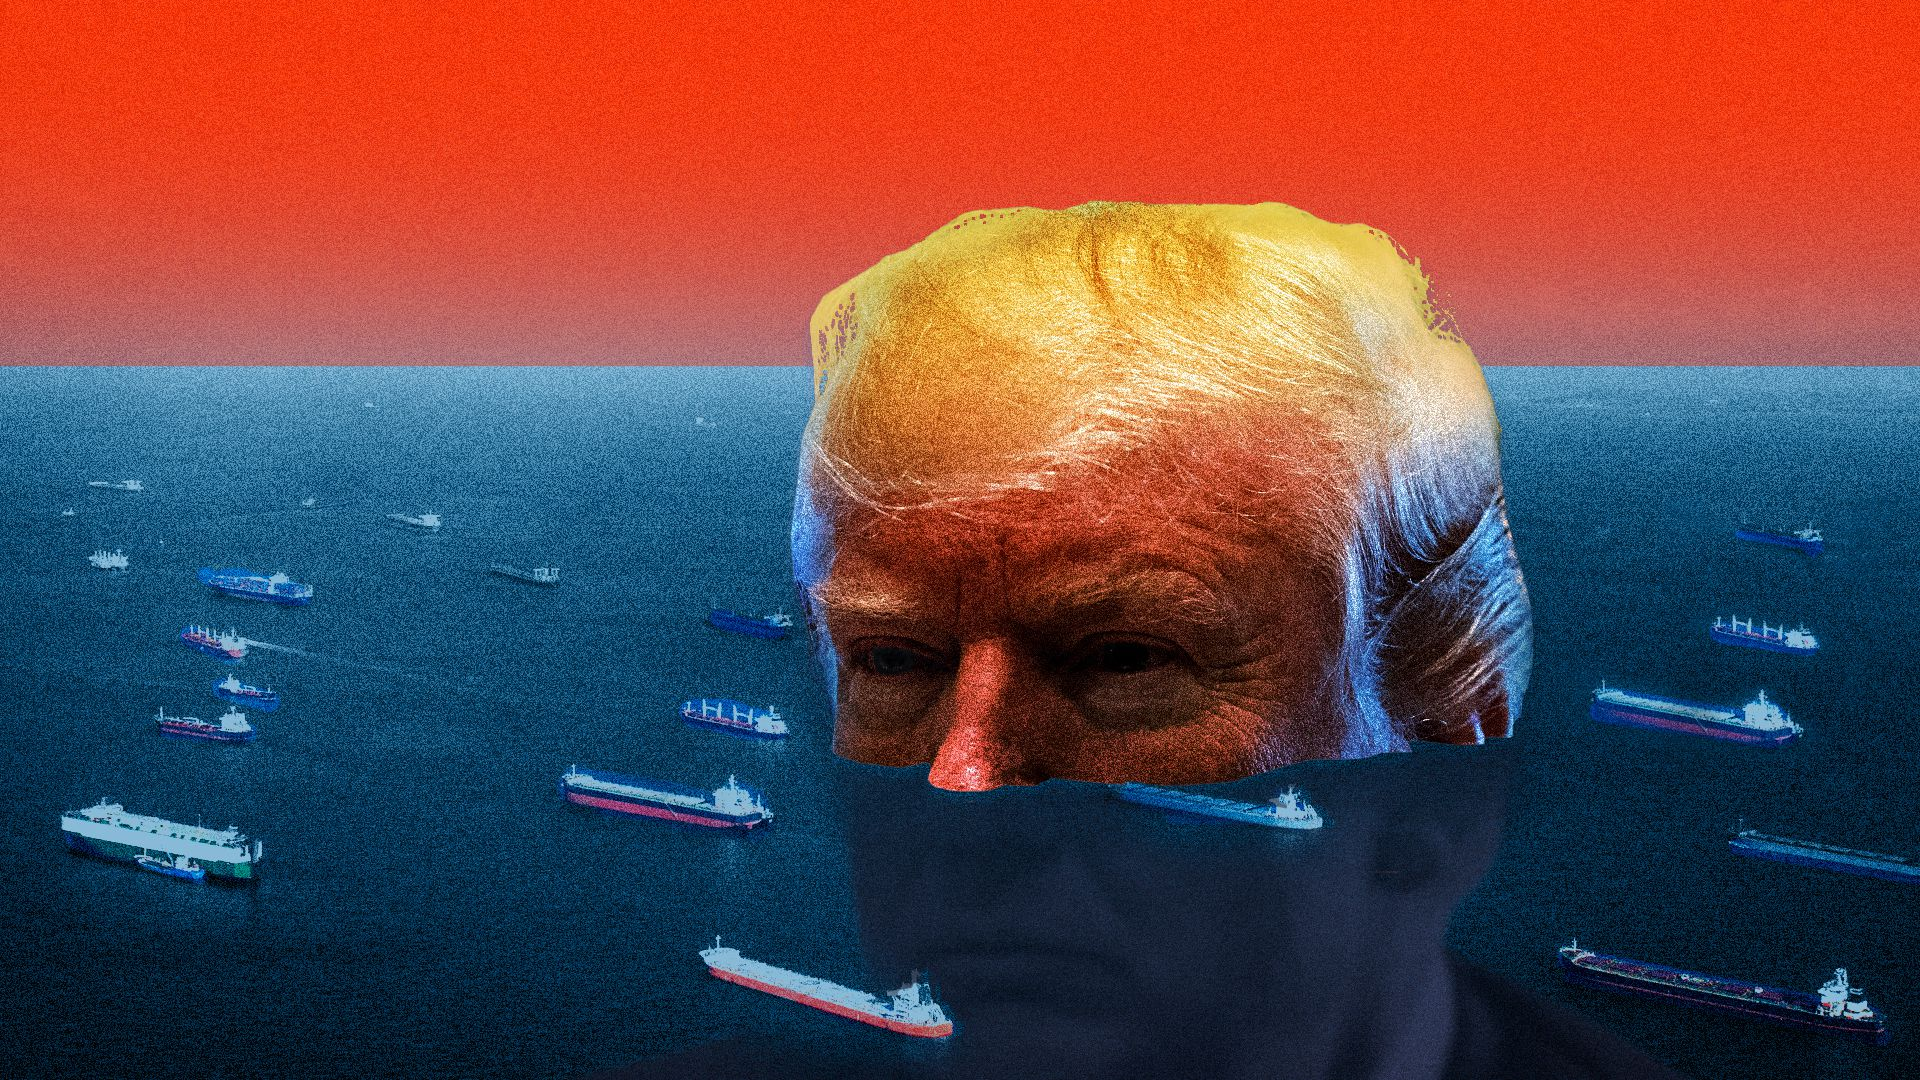 Illustration of President Trump's giant head half submerged in ocean with nuclear sub ships floating around